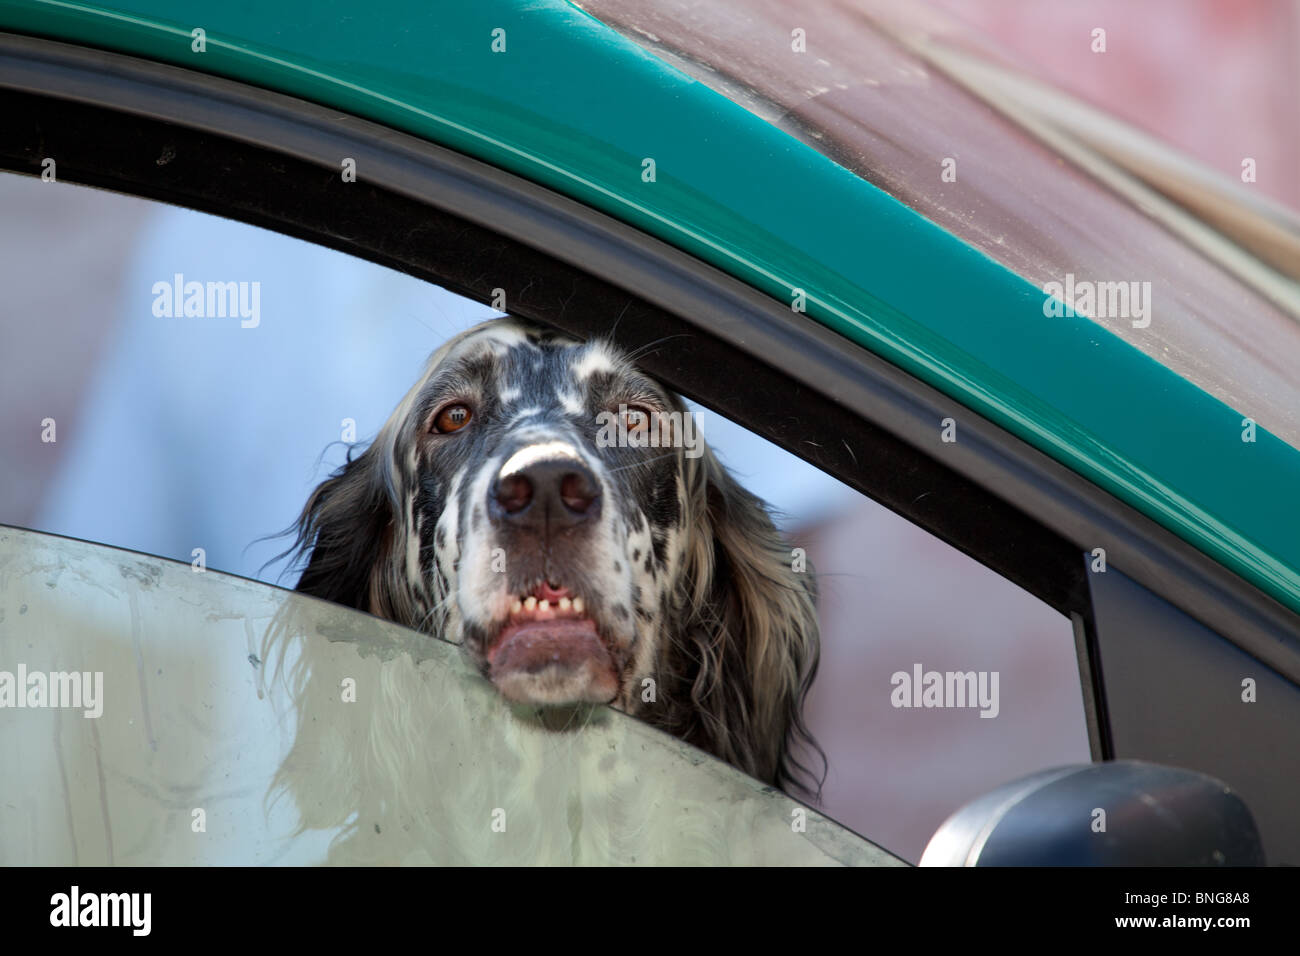 A dog left alone in a parked car looking out of a partially open window - Stock Image